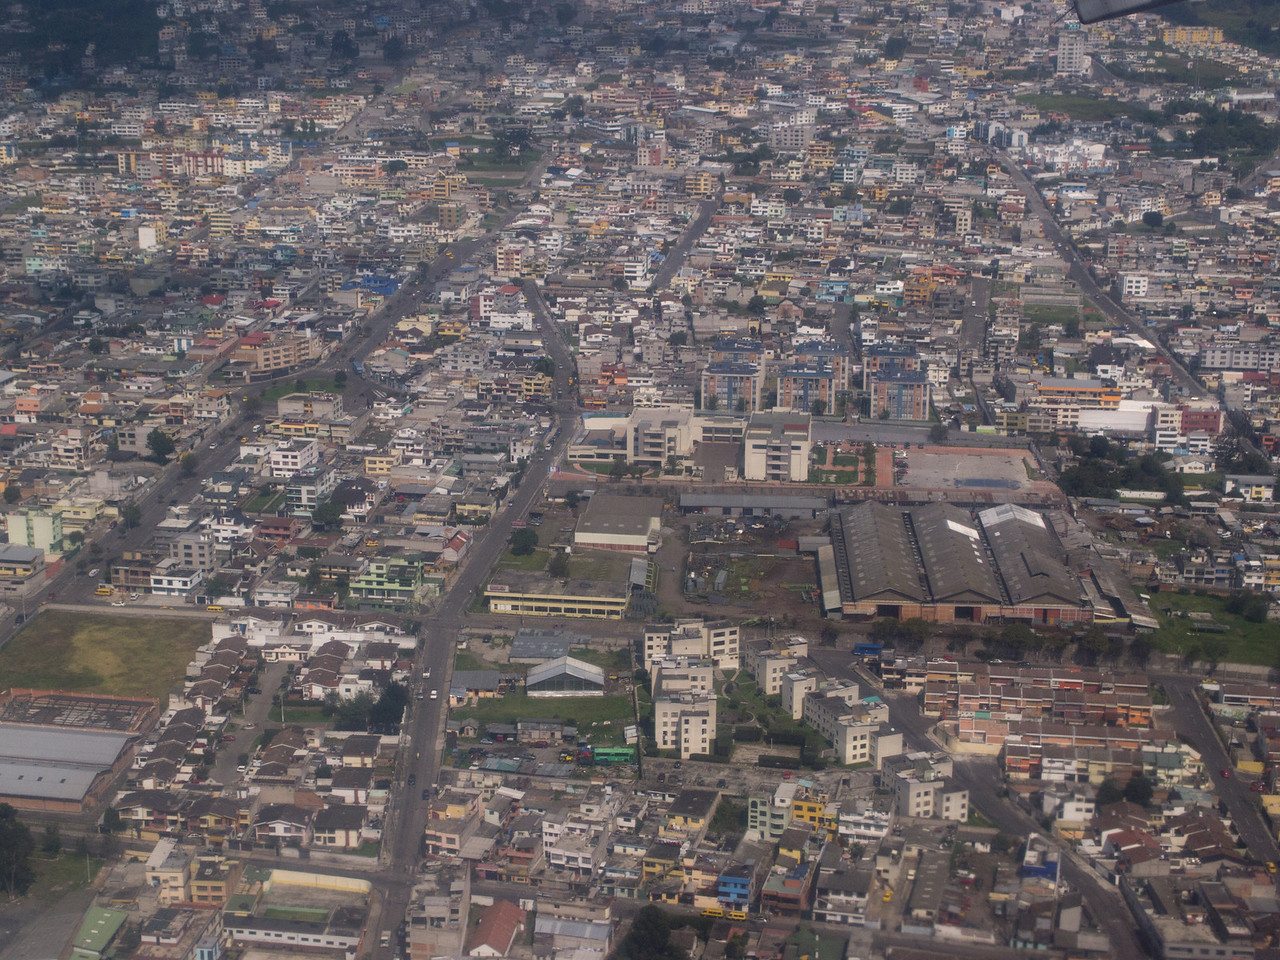 Quito from the air (flying to the Galapagos)